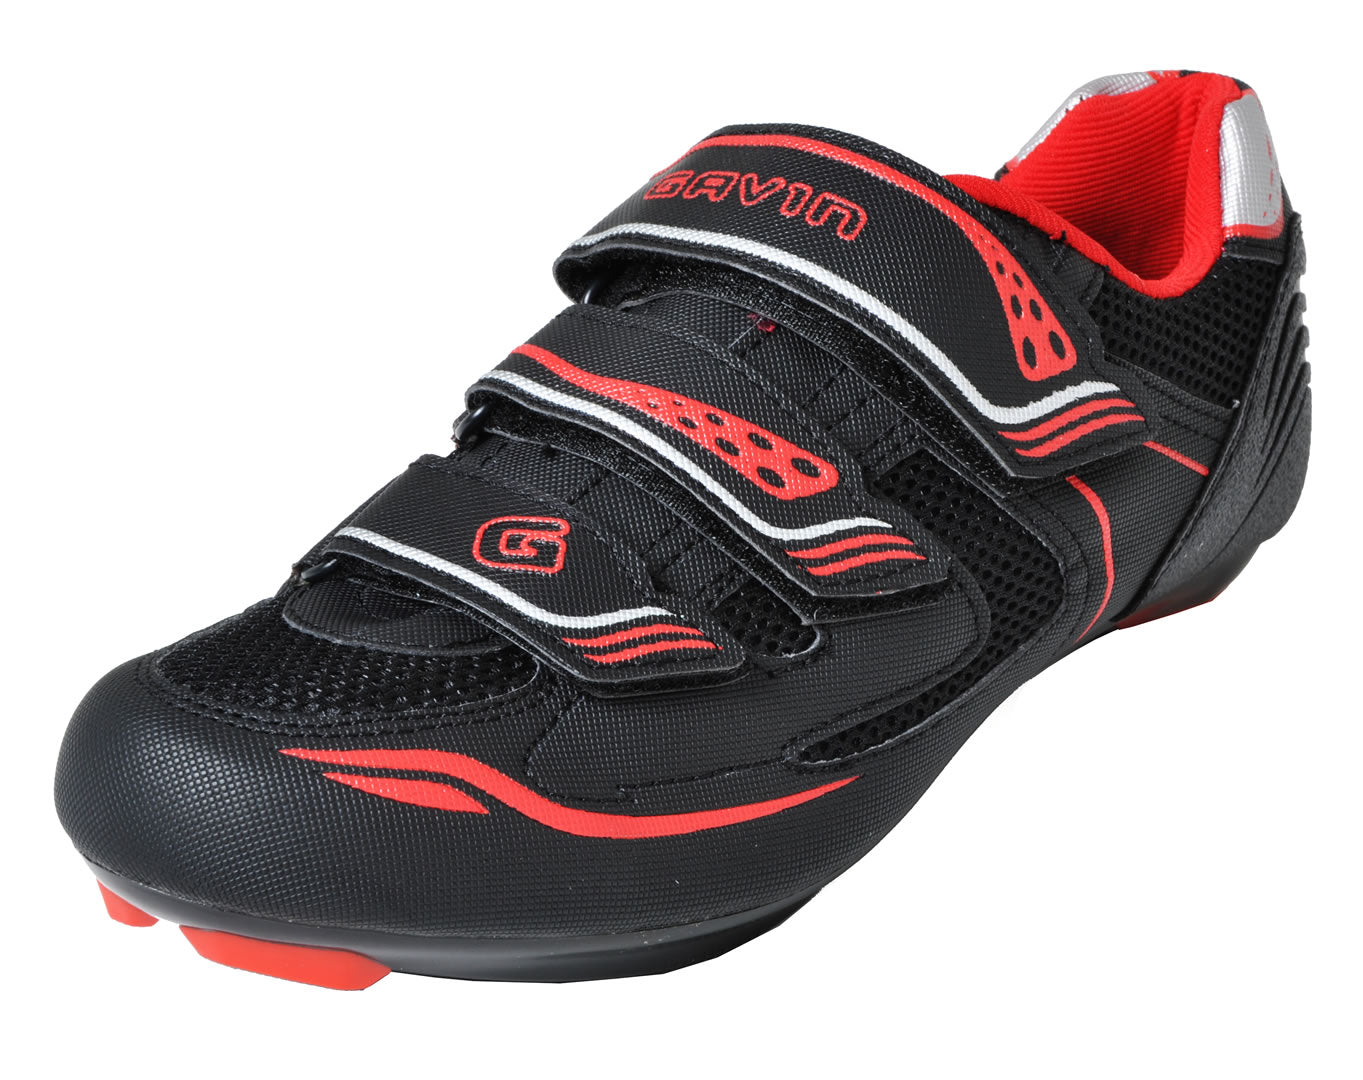 products/525-VELO-SHOE__01.jpg_105.jpg